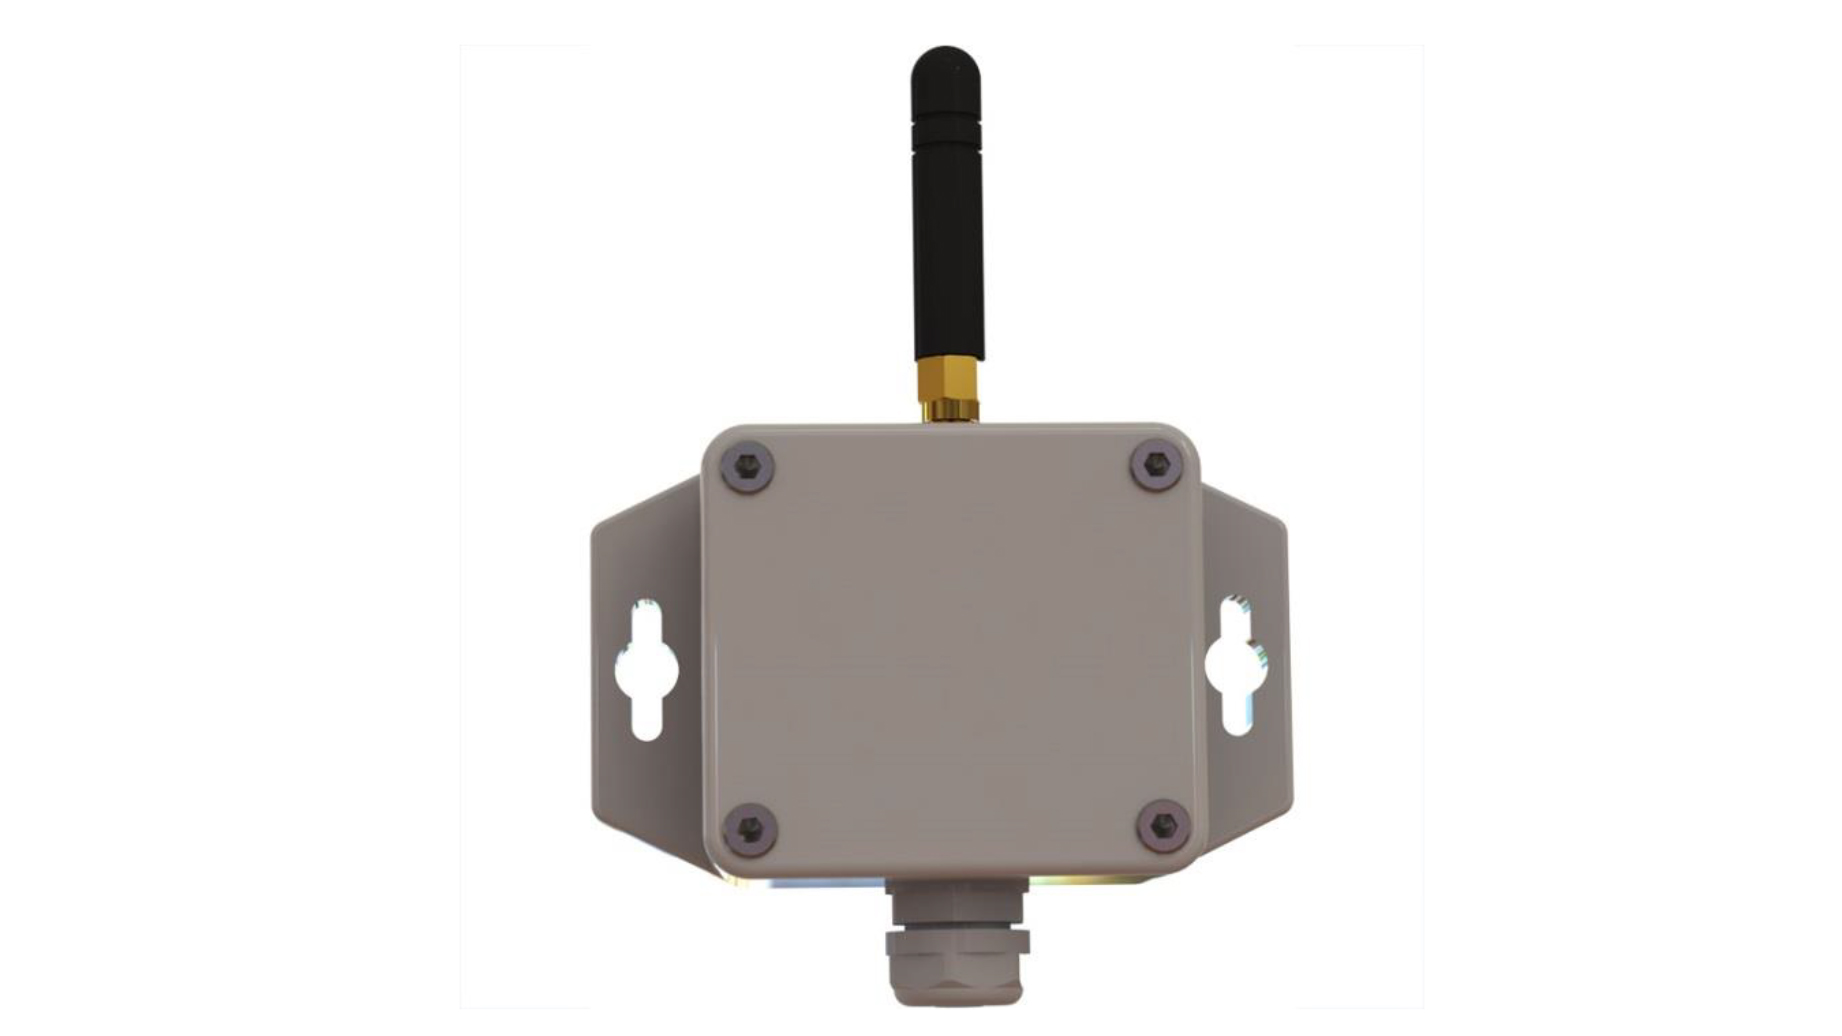 Elsys ELT-2-HP met externe antenne connectie | LoRa end nodes | Product | MCS